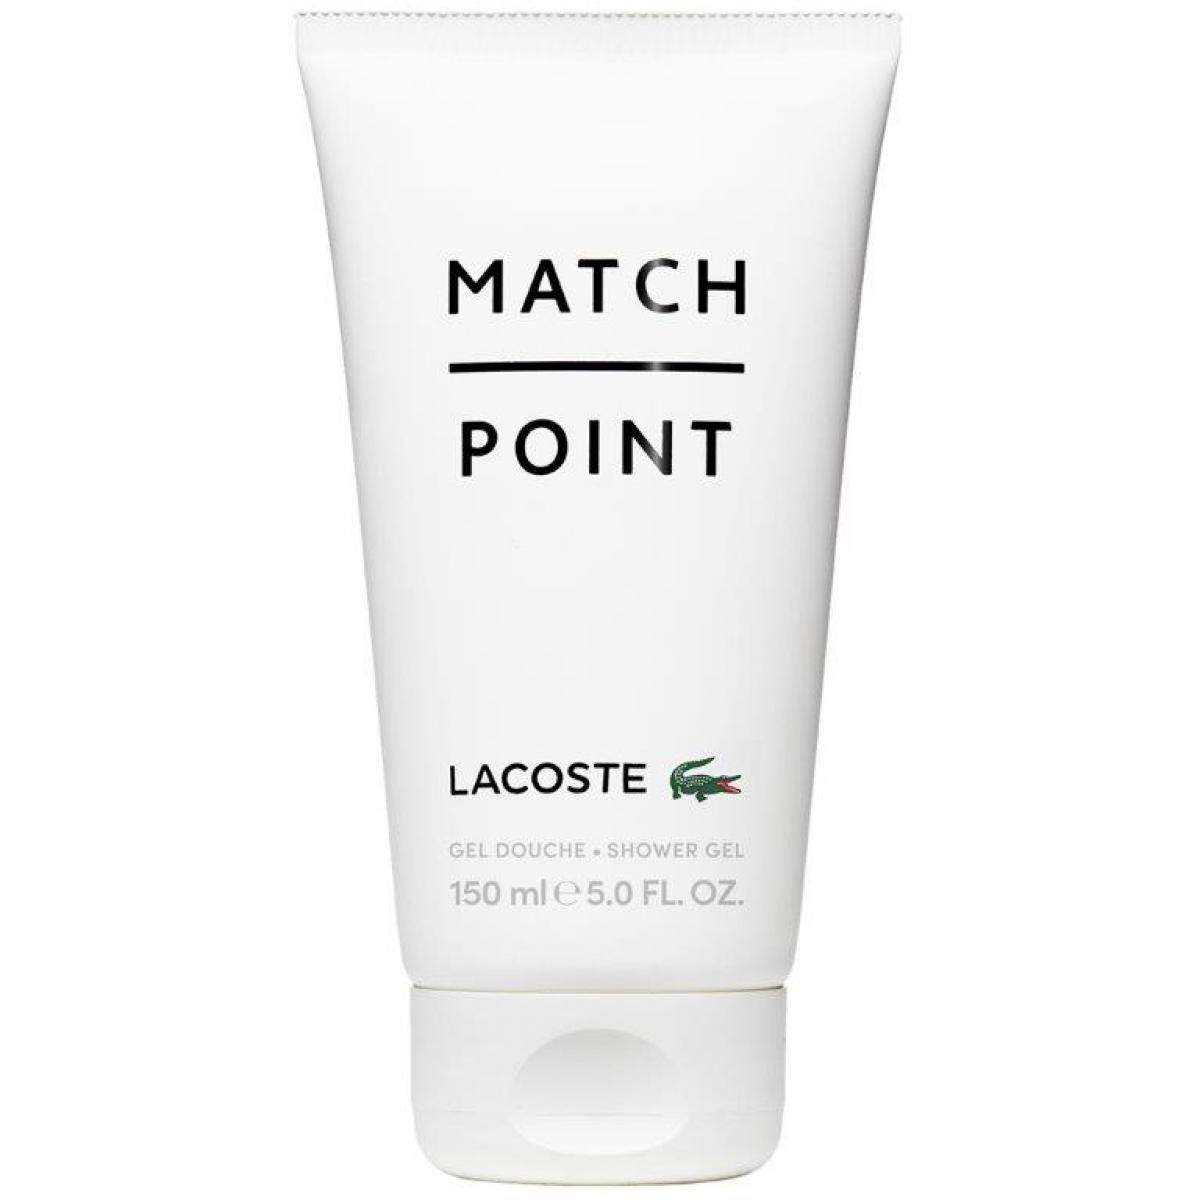 LACOSTE Match Point Gel douche 150ml